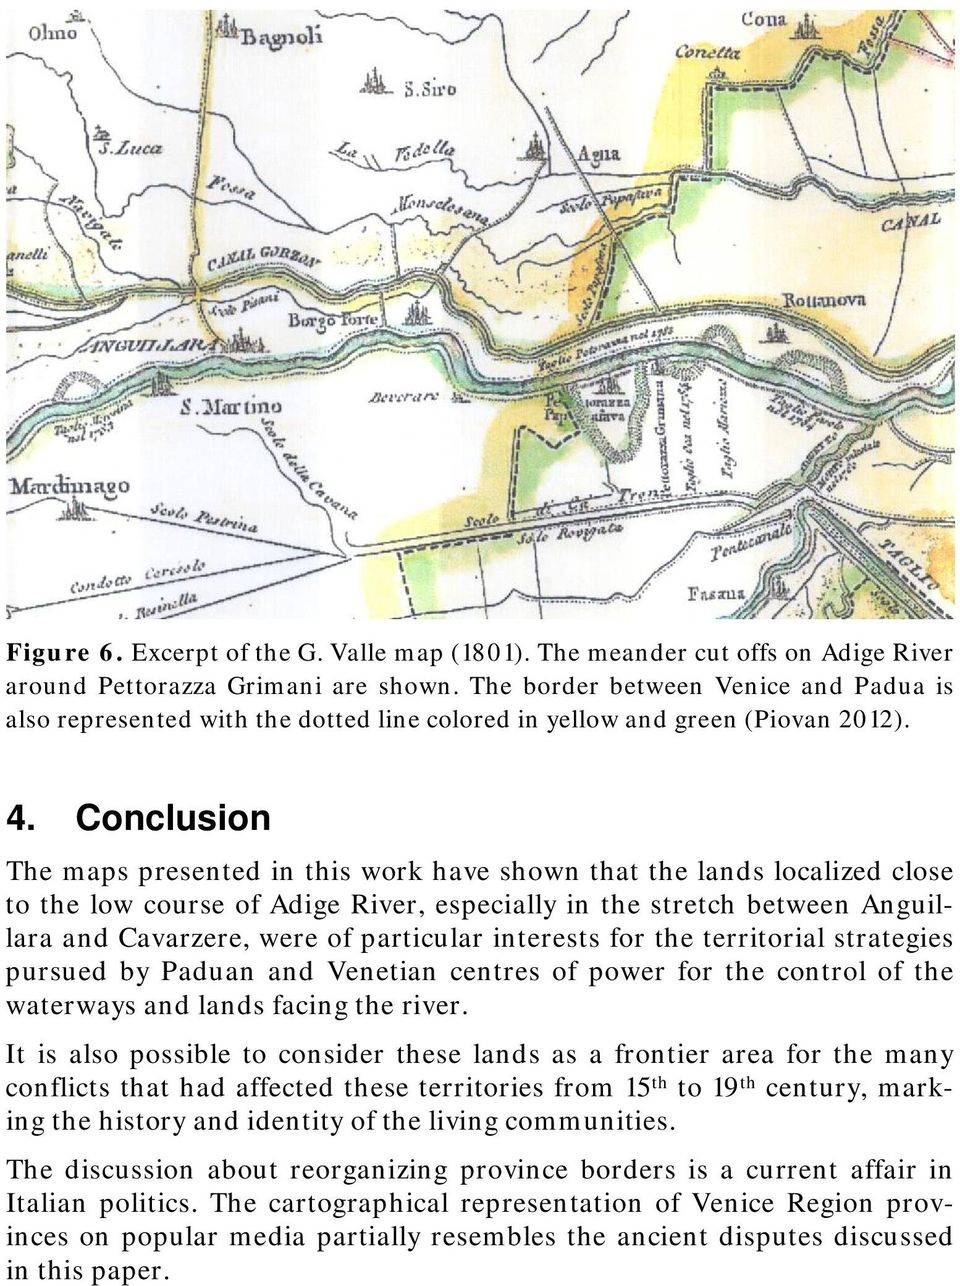 Conclusion The maps presented in this work have shown that the lands localized close to the low course of Adige River, especially in the stretch between Anguillara and Cavarzere, were of particular